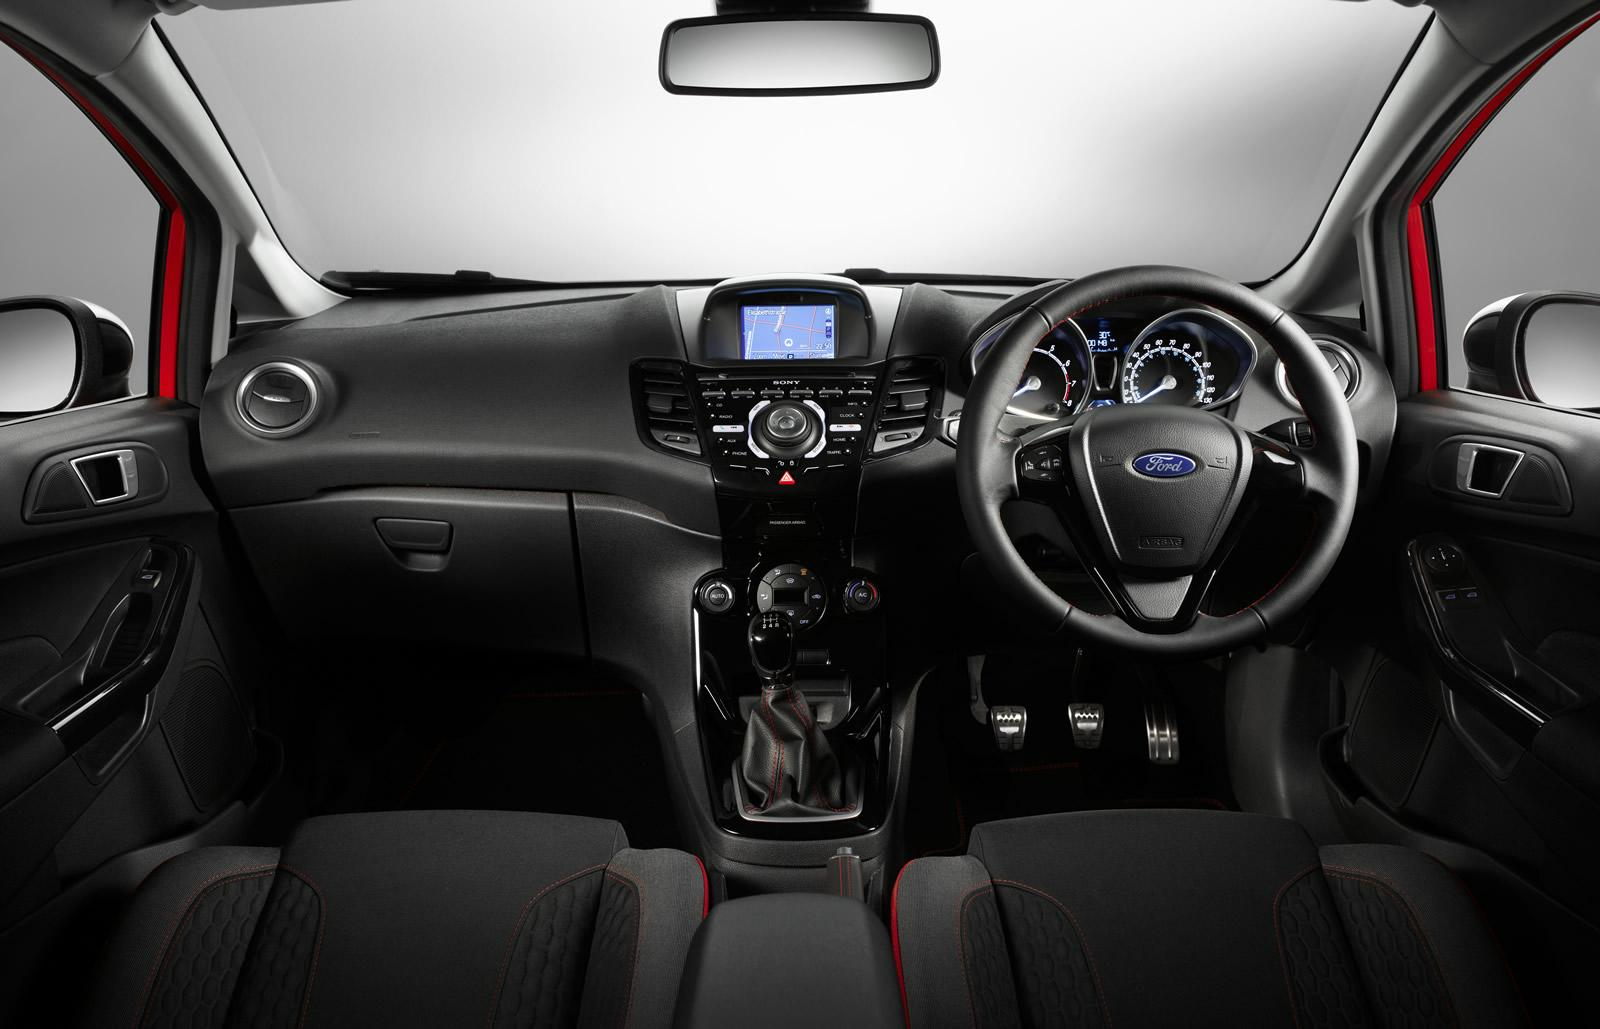 Ford Fiesta Red and Black Editions (7)